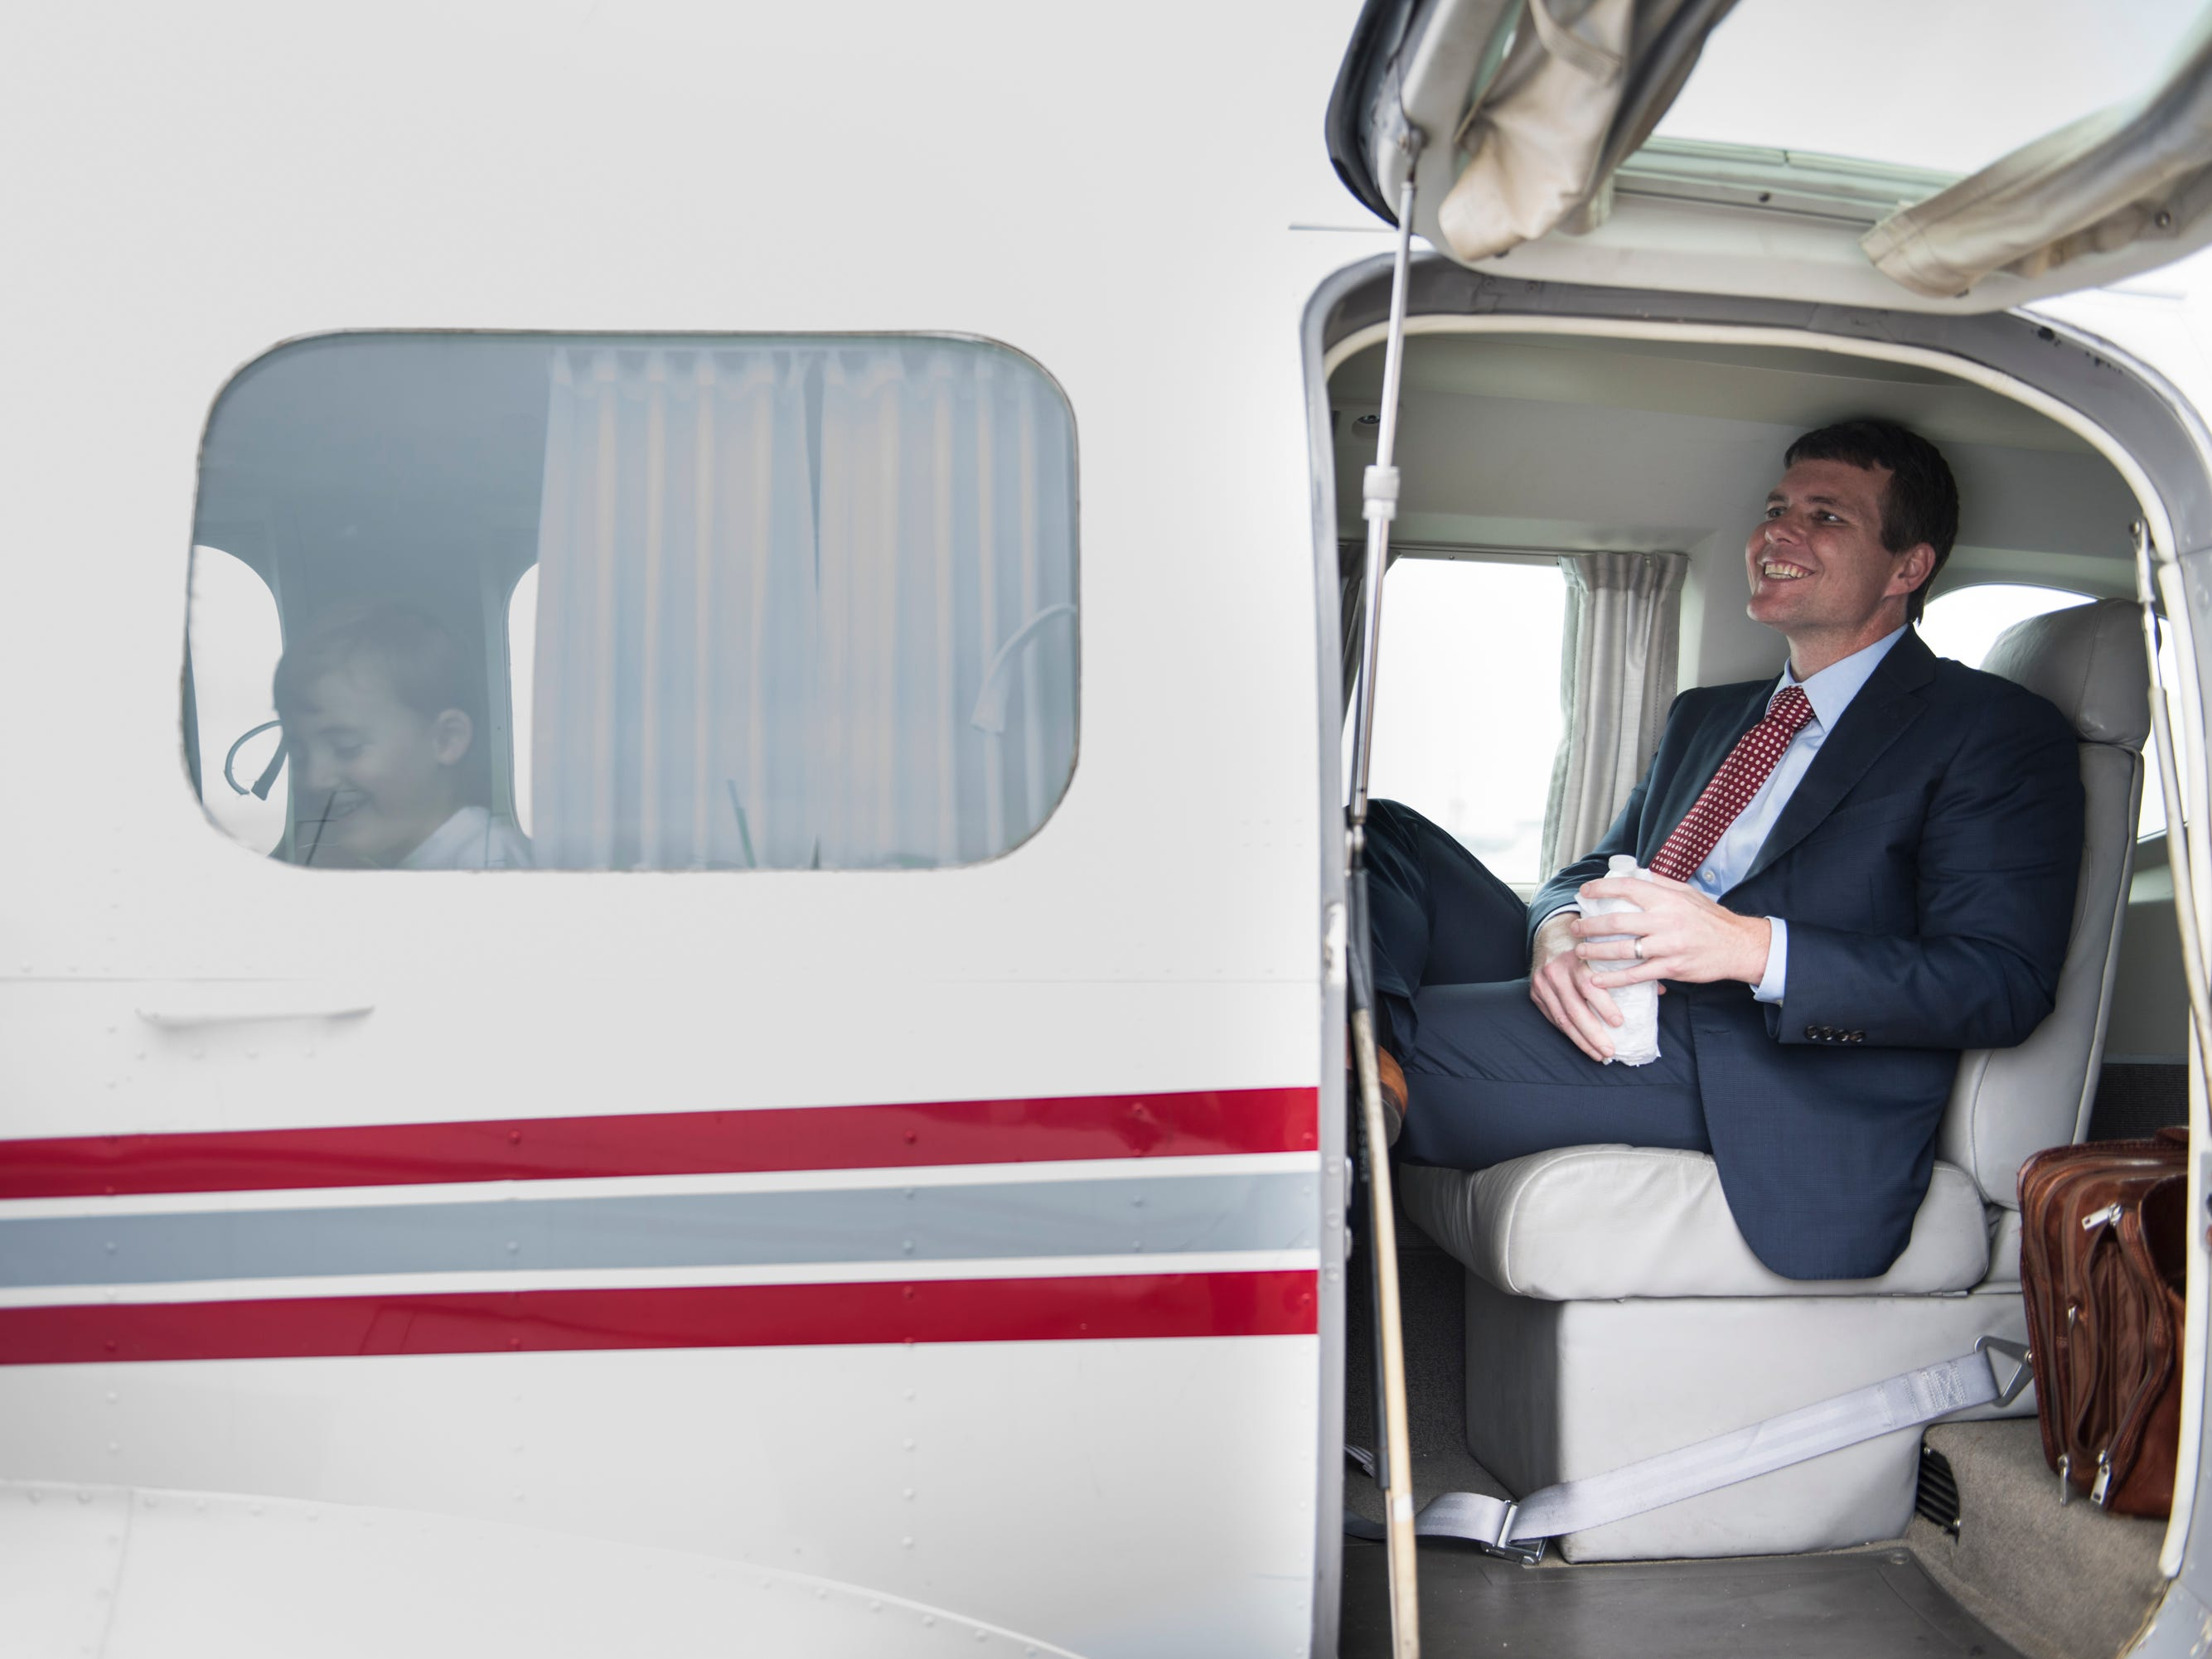 Democratic gubernatorial nominee Walt Maddox waits to takeoff after a final campaign stop at Montgomery Airport in Montgomery, Ala., on Monday, Nov. 5, 2018.